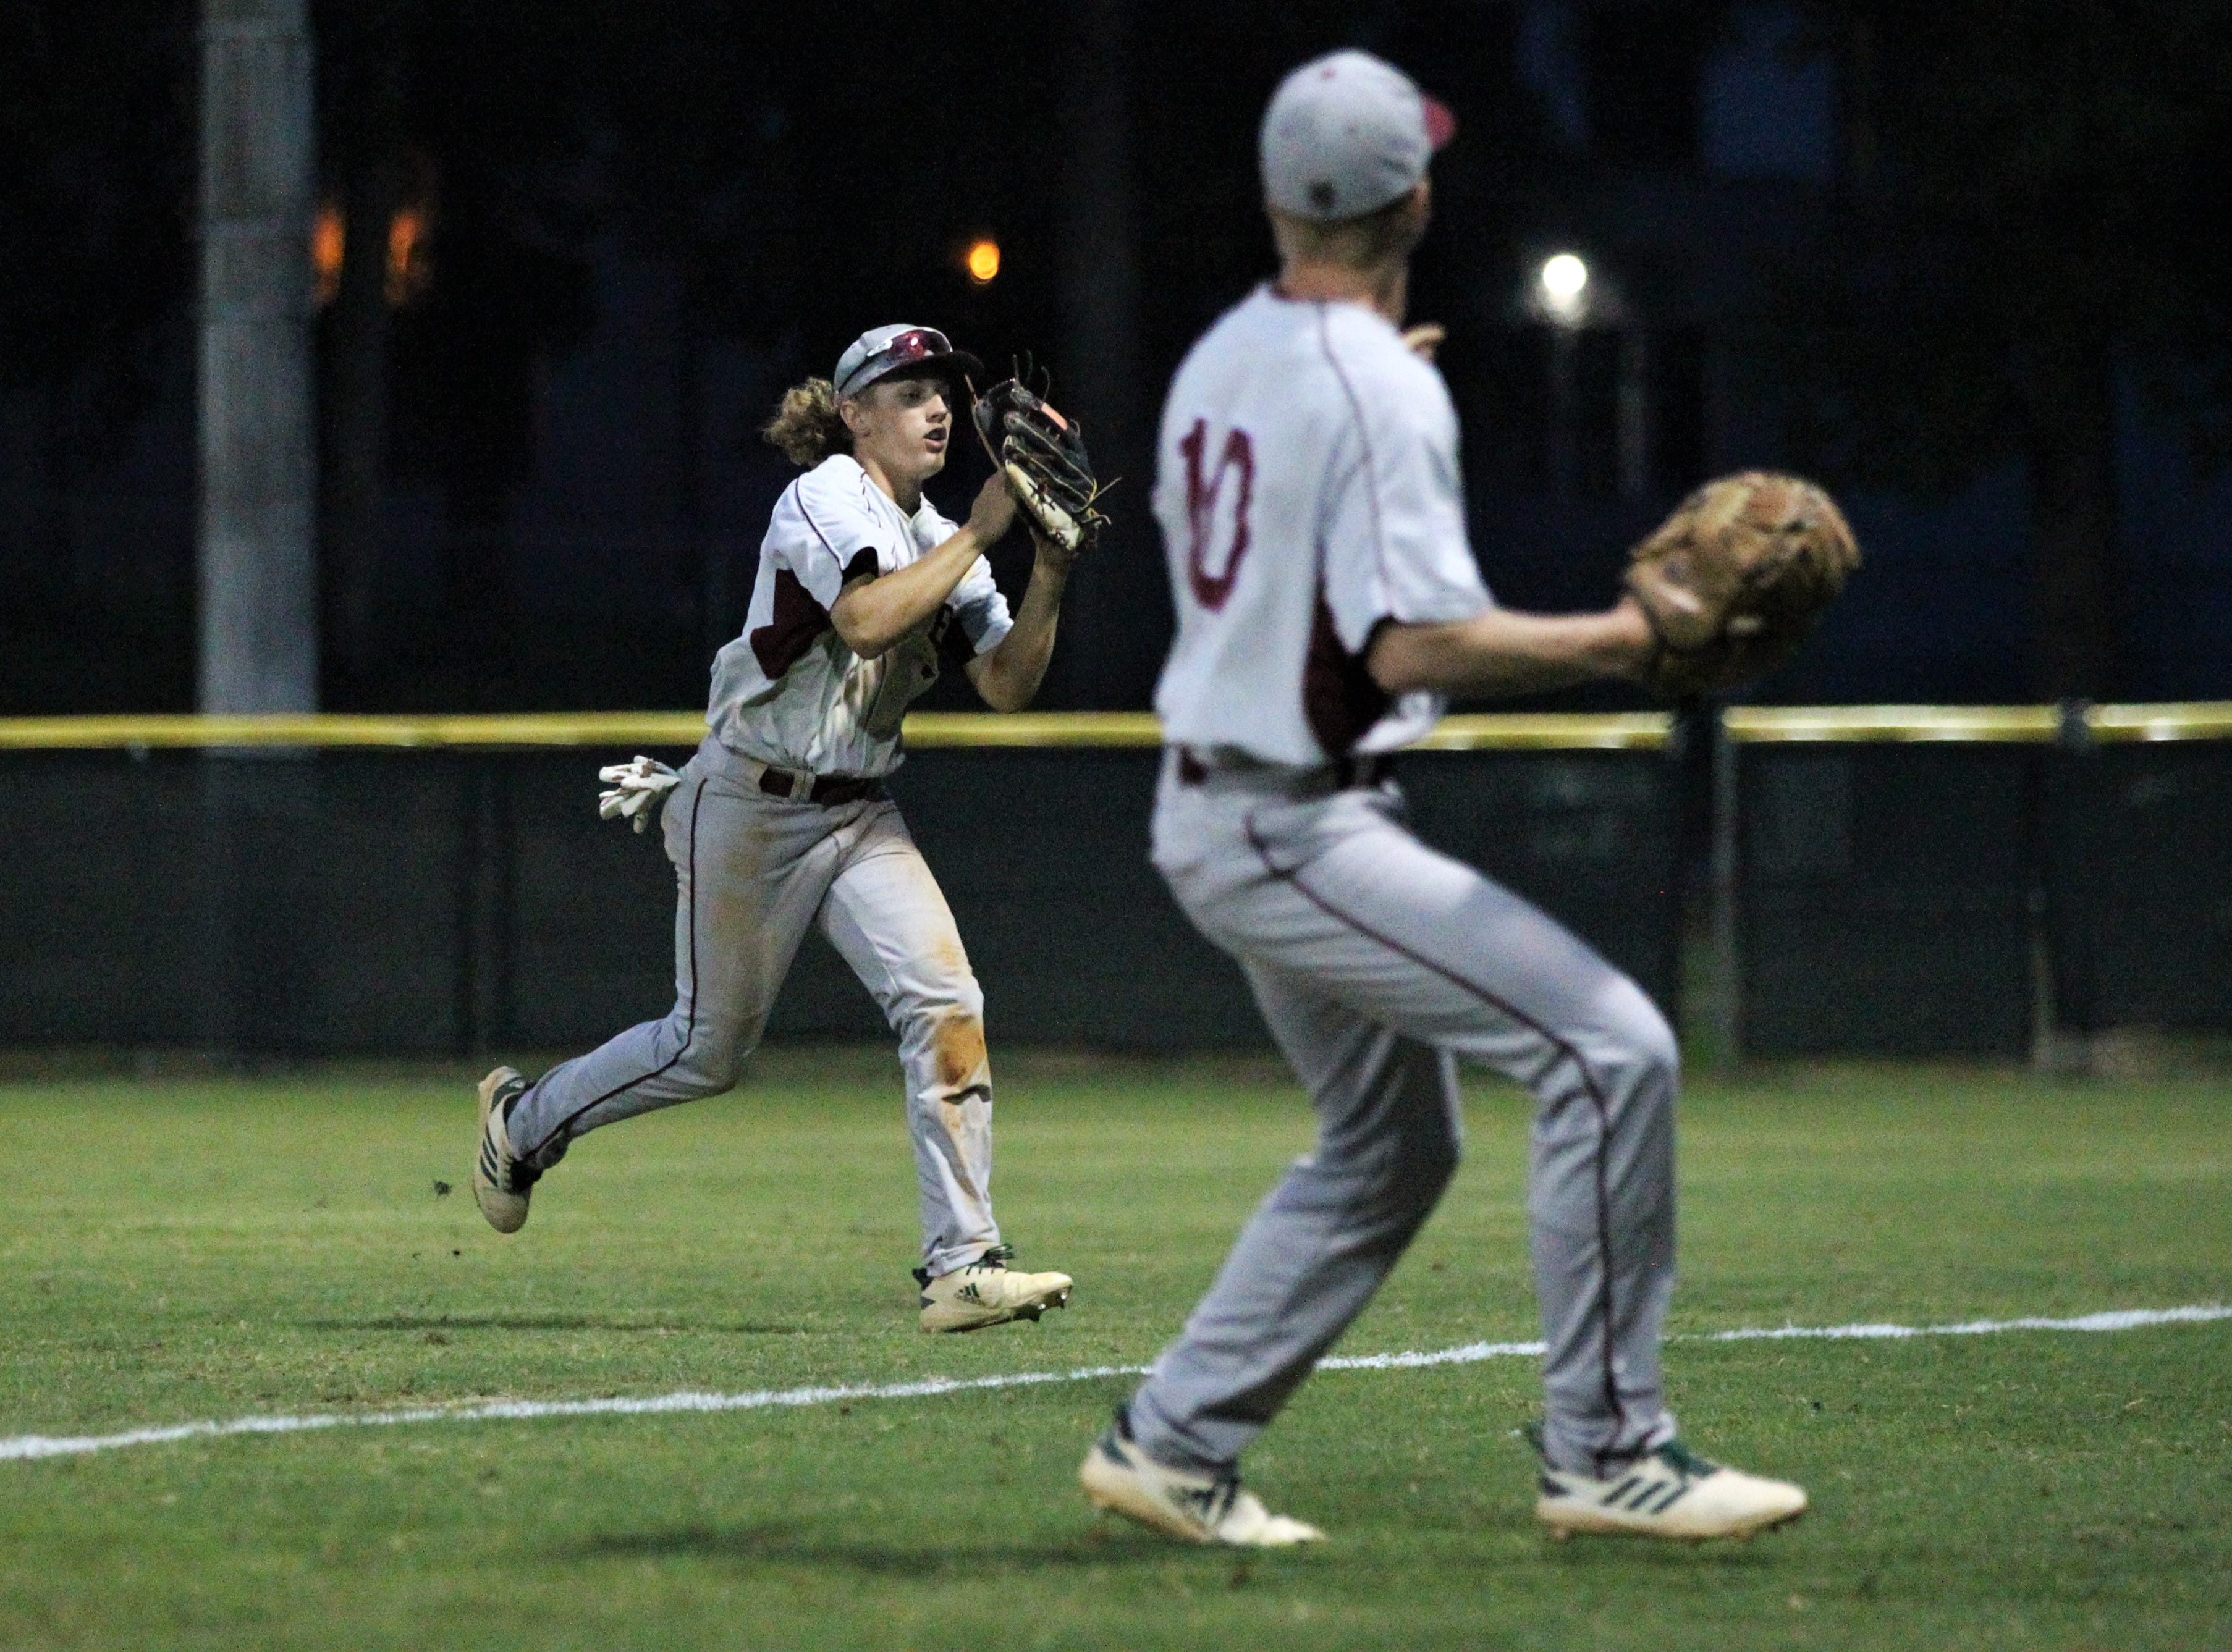 Chiles right fielder Tyler Gerteisen track down a fly ball on the run as Lincoln baseball beat Chiles 5-4  in 10 innings during a District 2-8A championship game on Thursday, May 9, 2019.